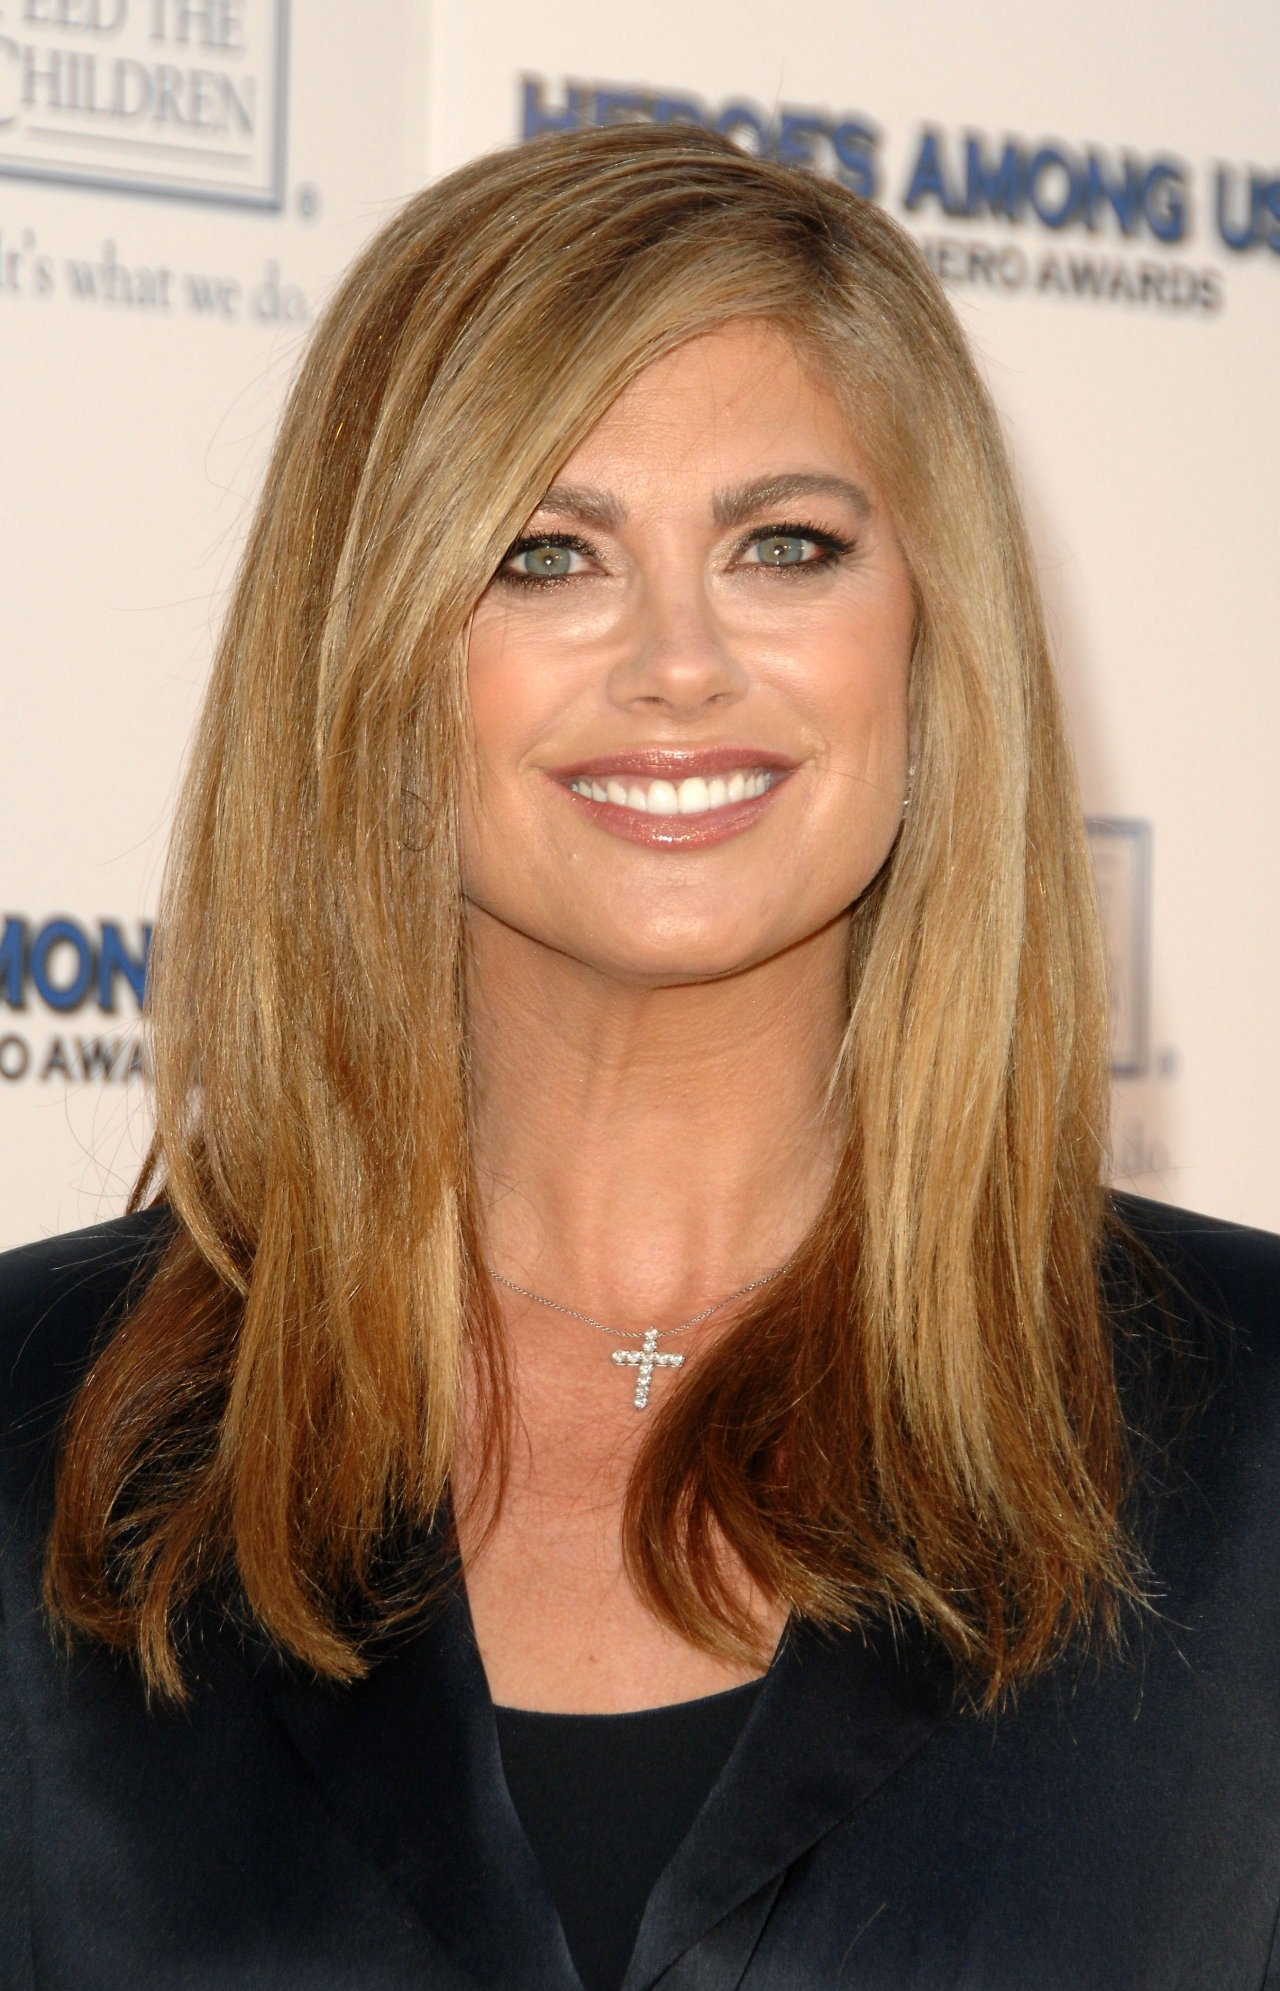 How much is Kathy Ireland worth?